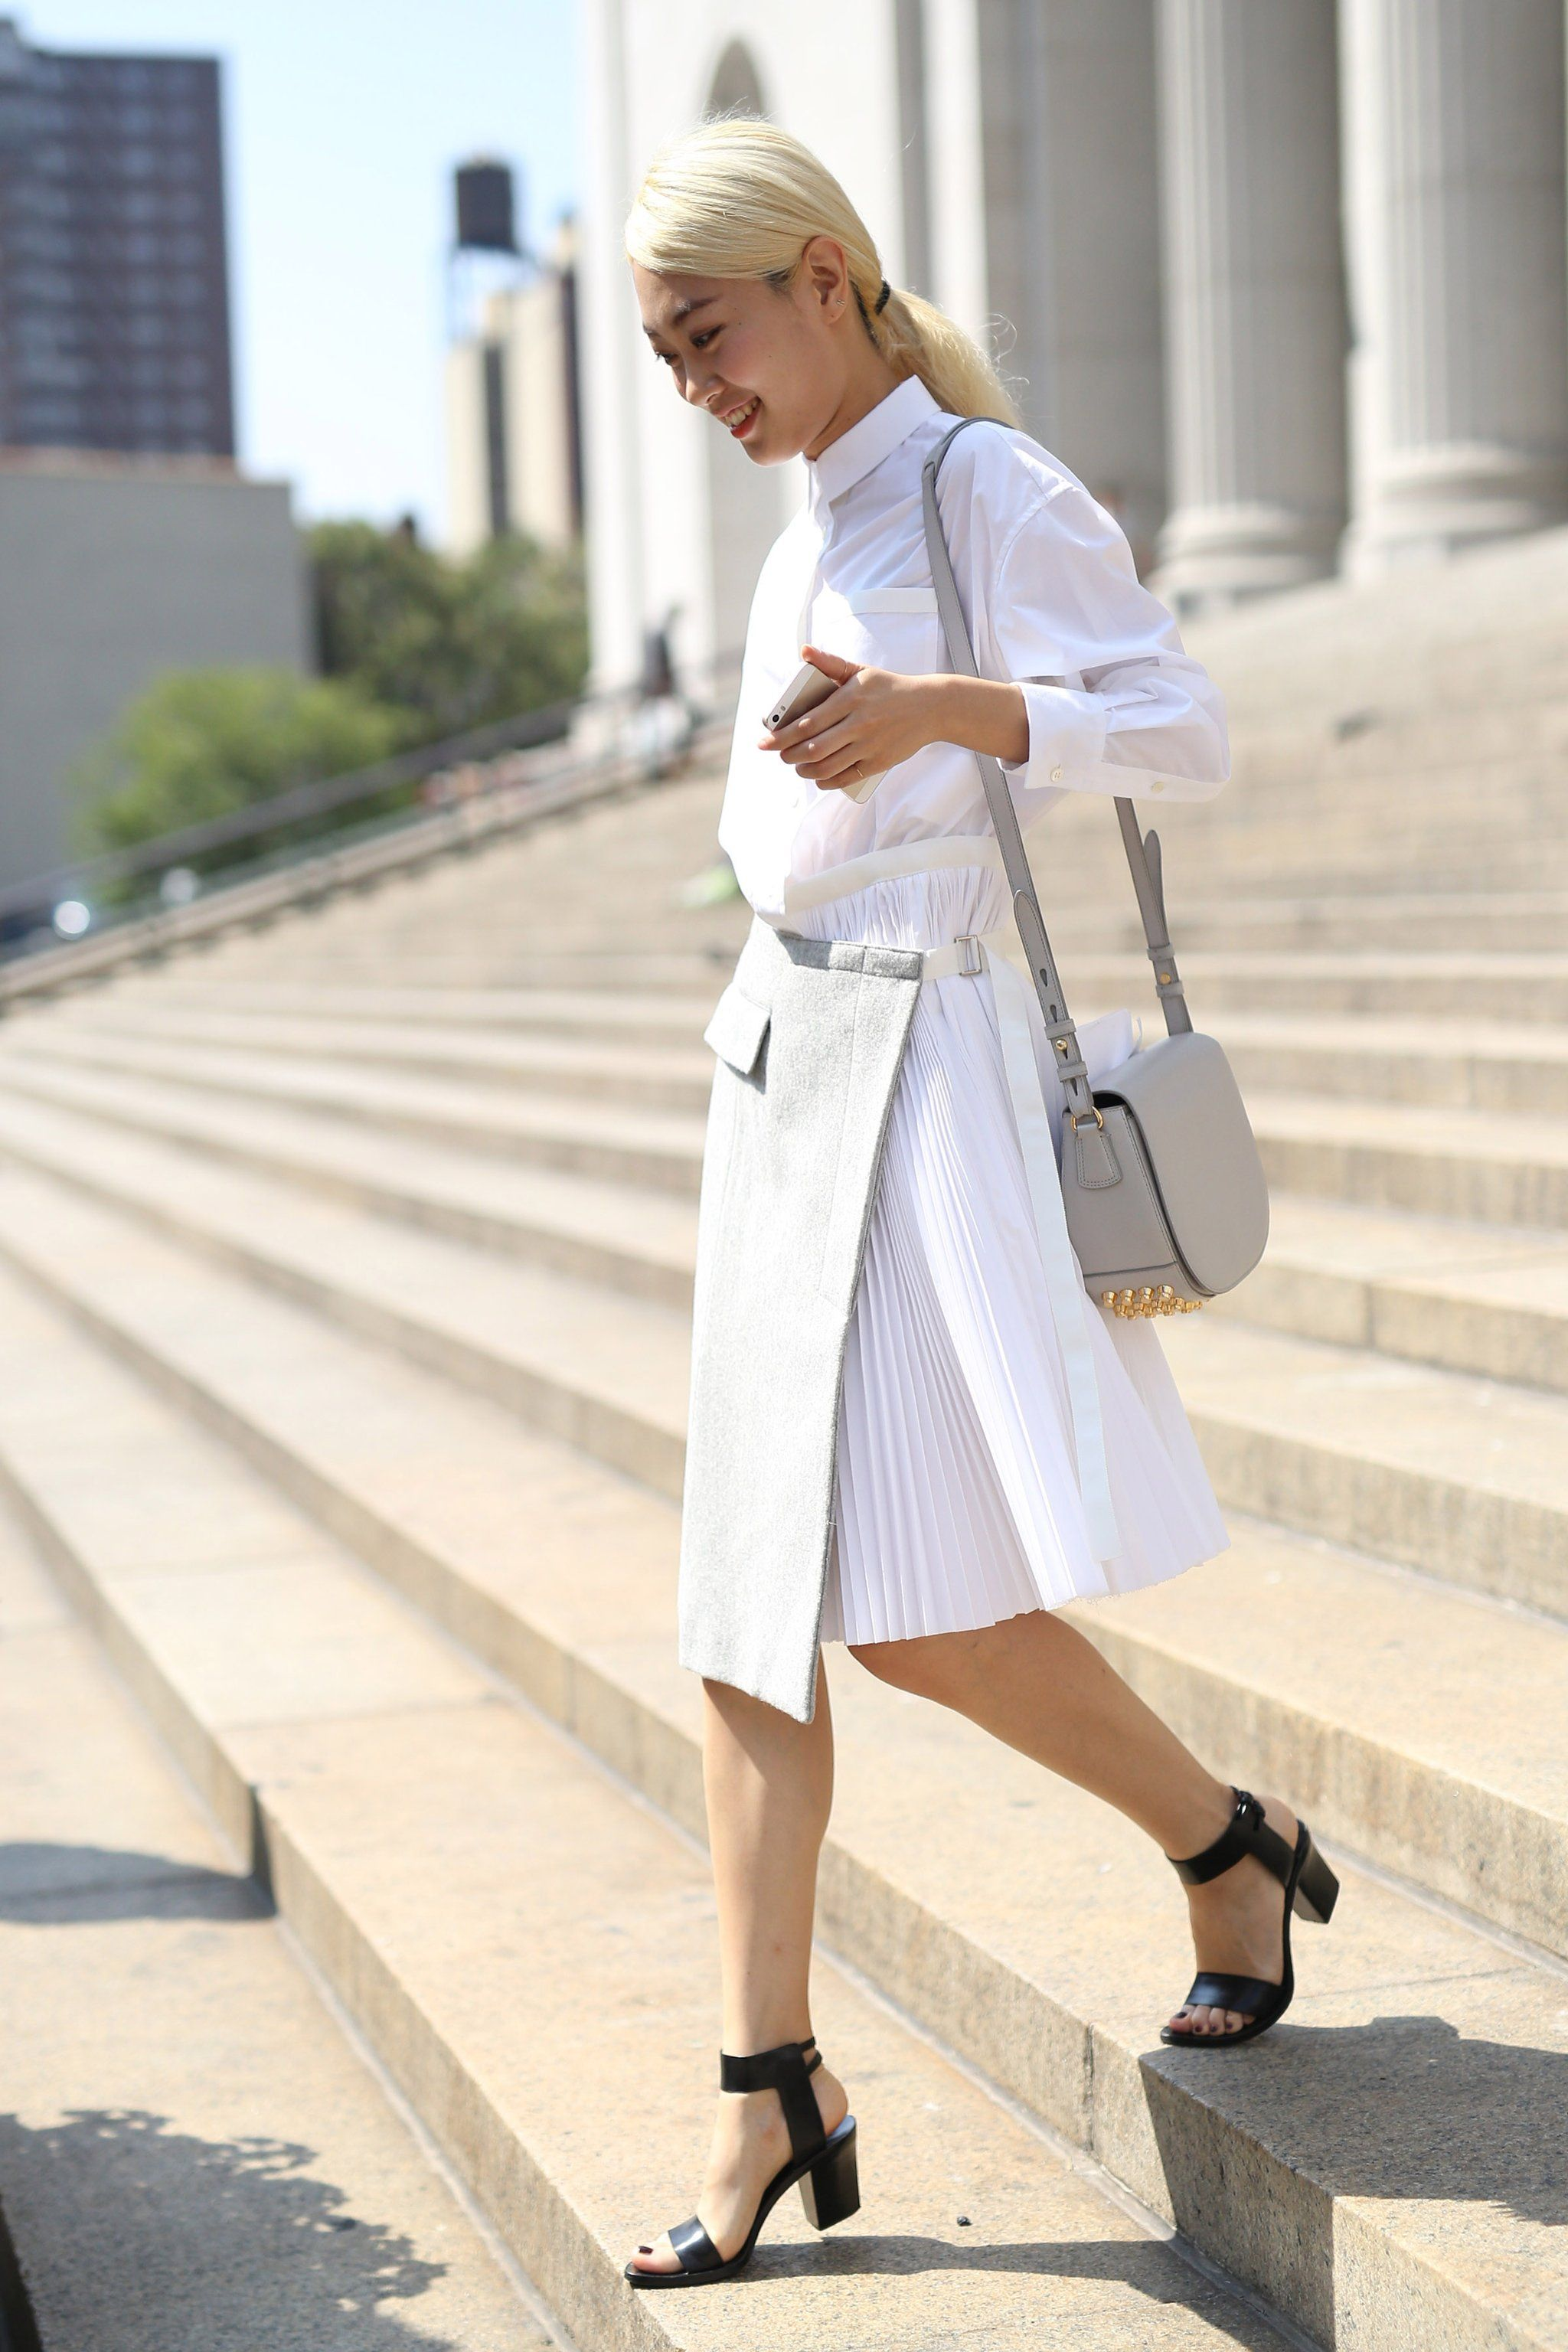 When less is more — stick to a minimalist palette and crisp silhouettes.